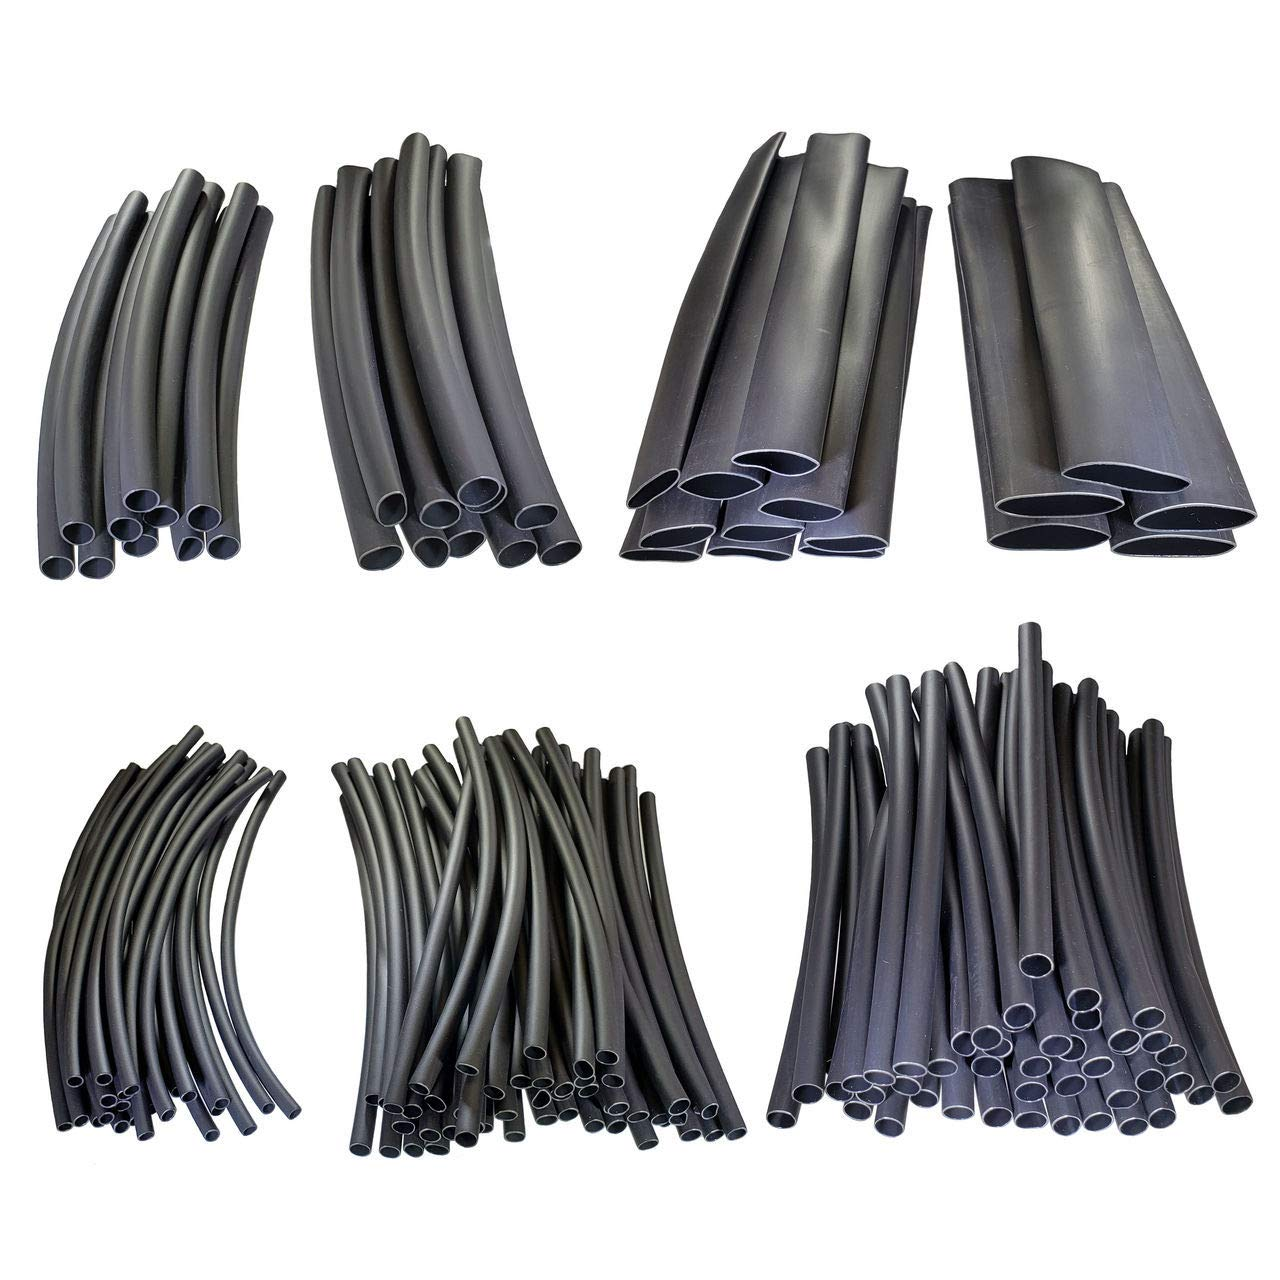 3:1 Heat Shrink Tubing Adhesive Lined - Automotive & Marine Grade - Includes: 1/8'', 3/16'', 1/4'', 5/16'', 3/8'', 1/2'' & 3/4'' - 6'' Sections - 160 Pieces Total - Buy Auto Supply # K13800